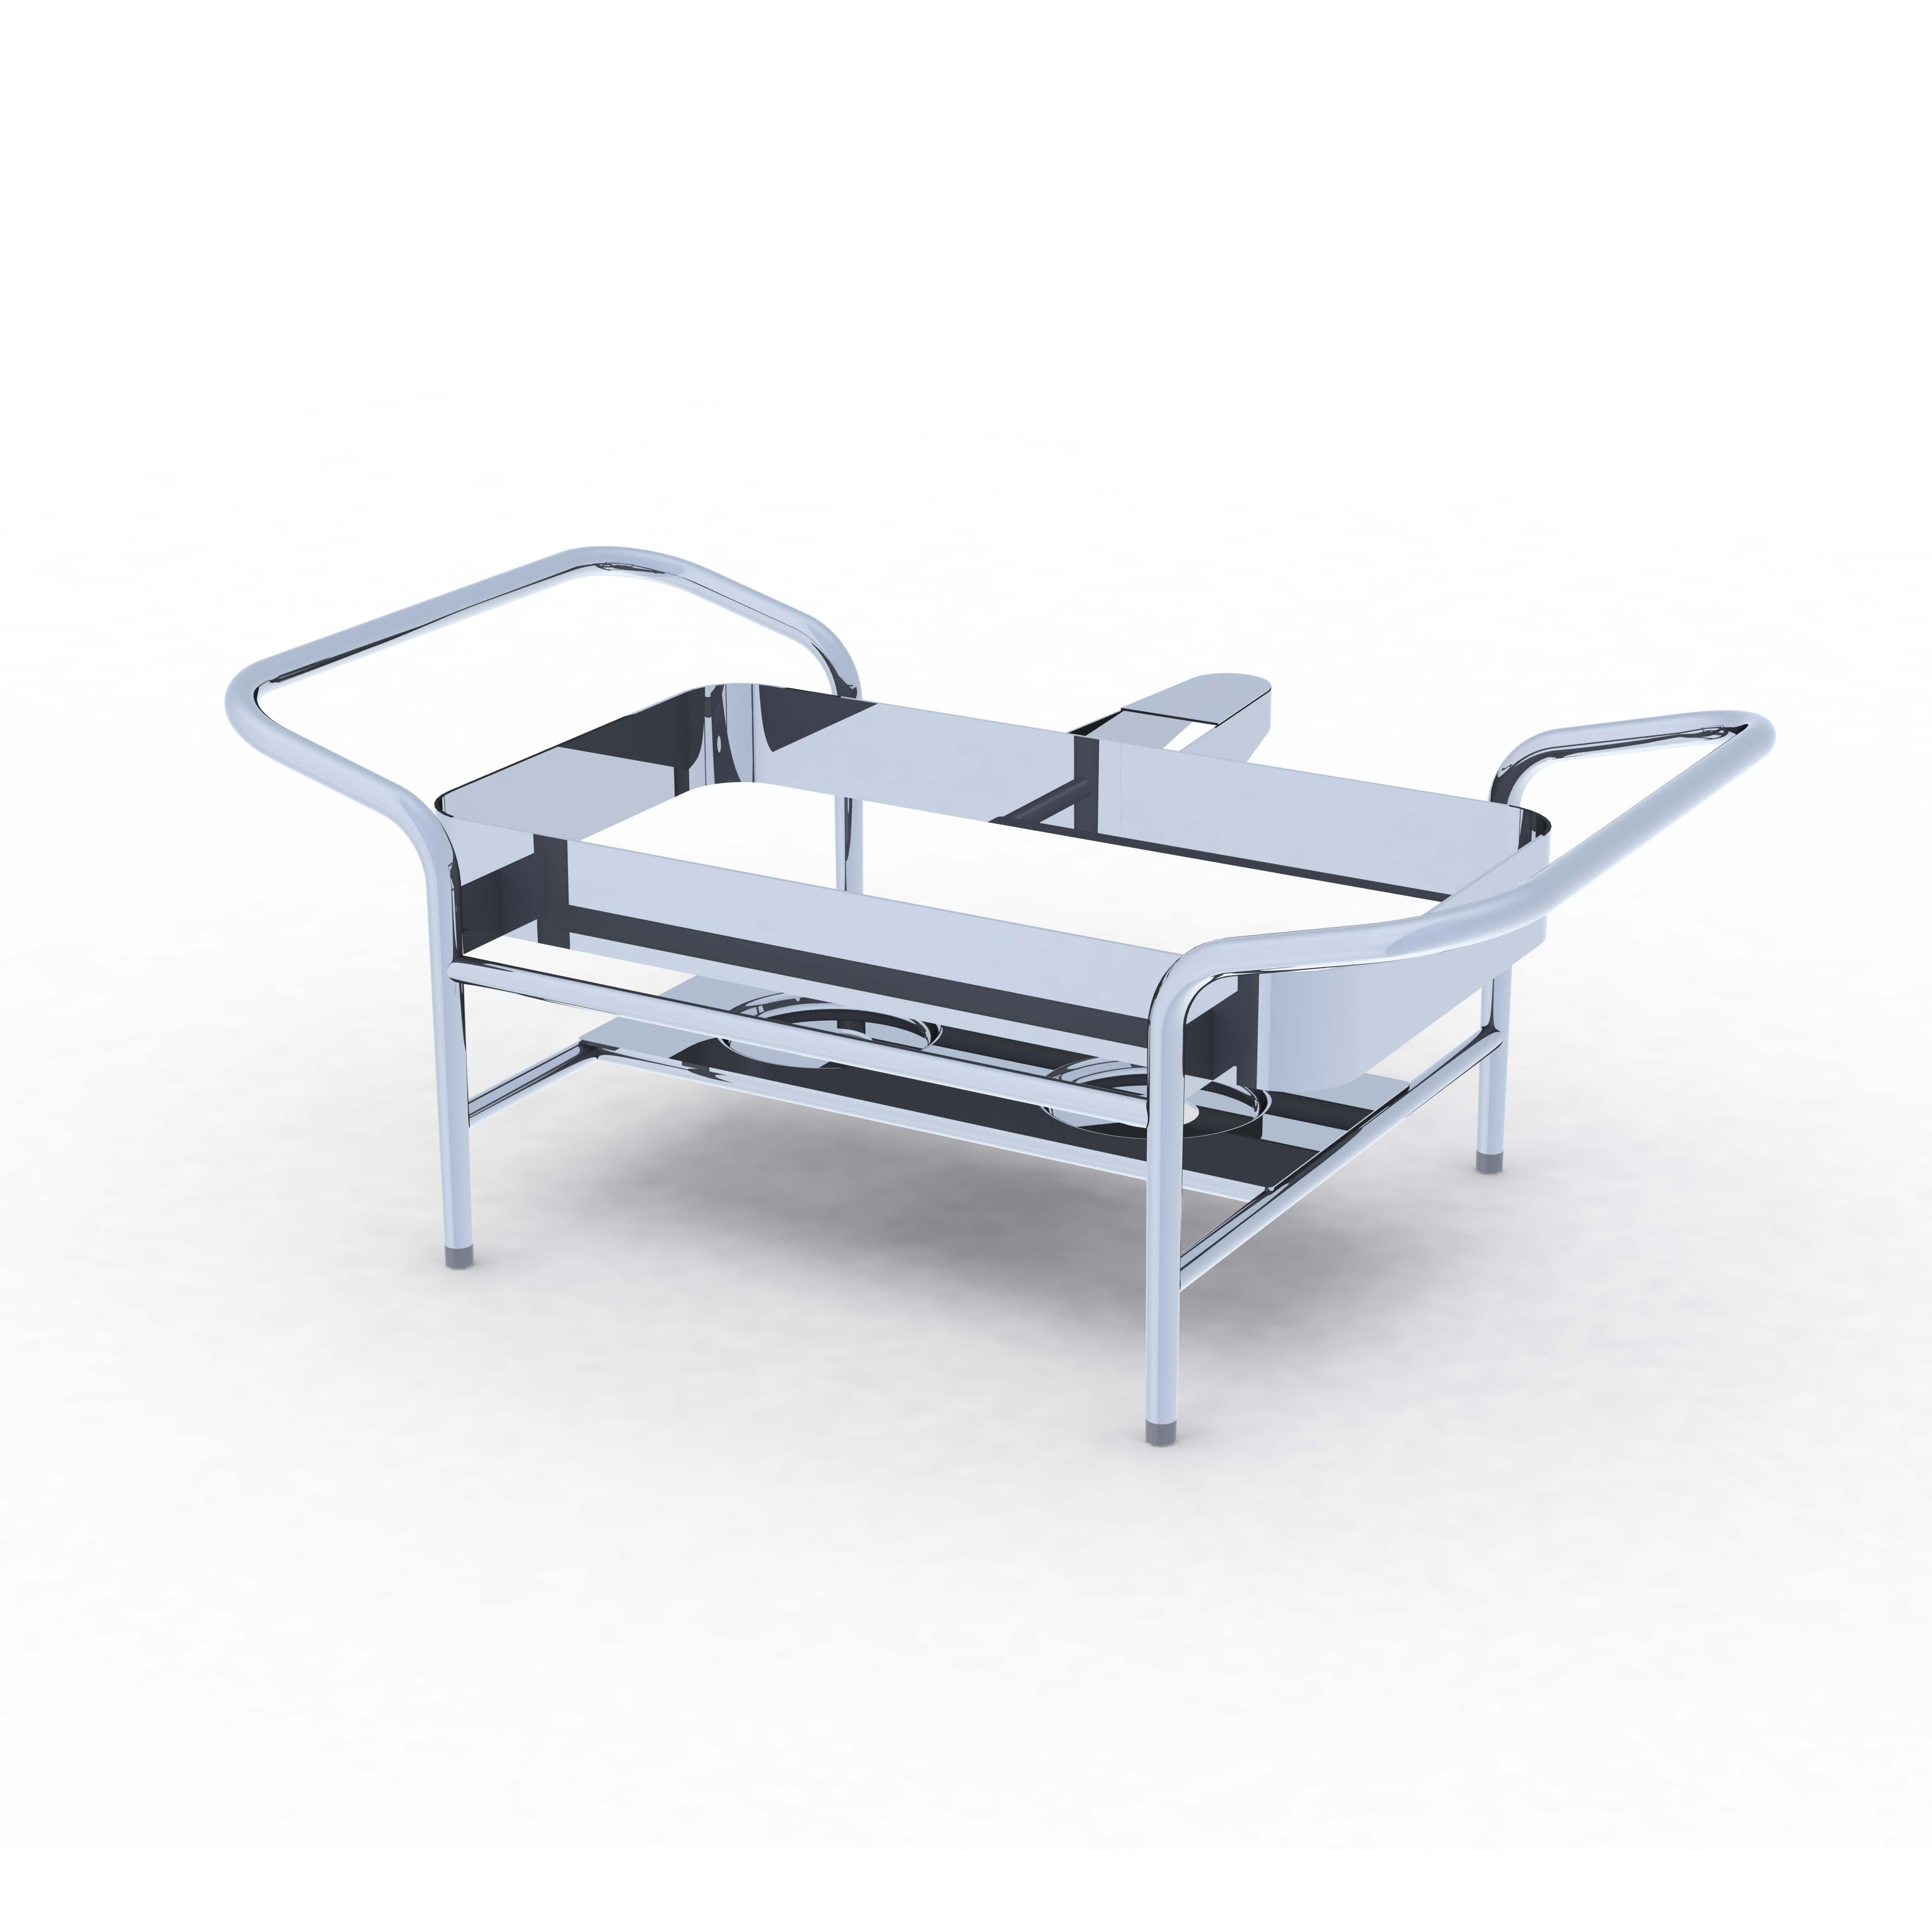 Vollrath 4644050 chafing dish frame / stand